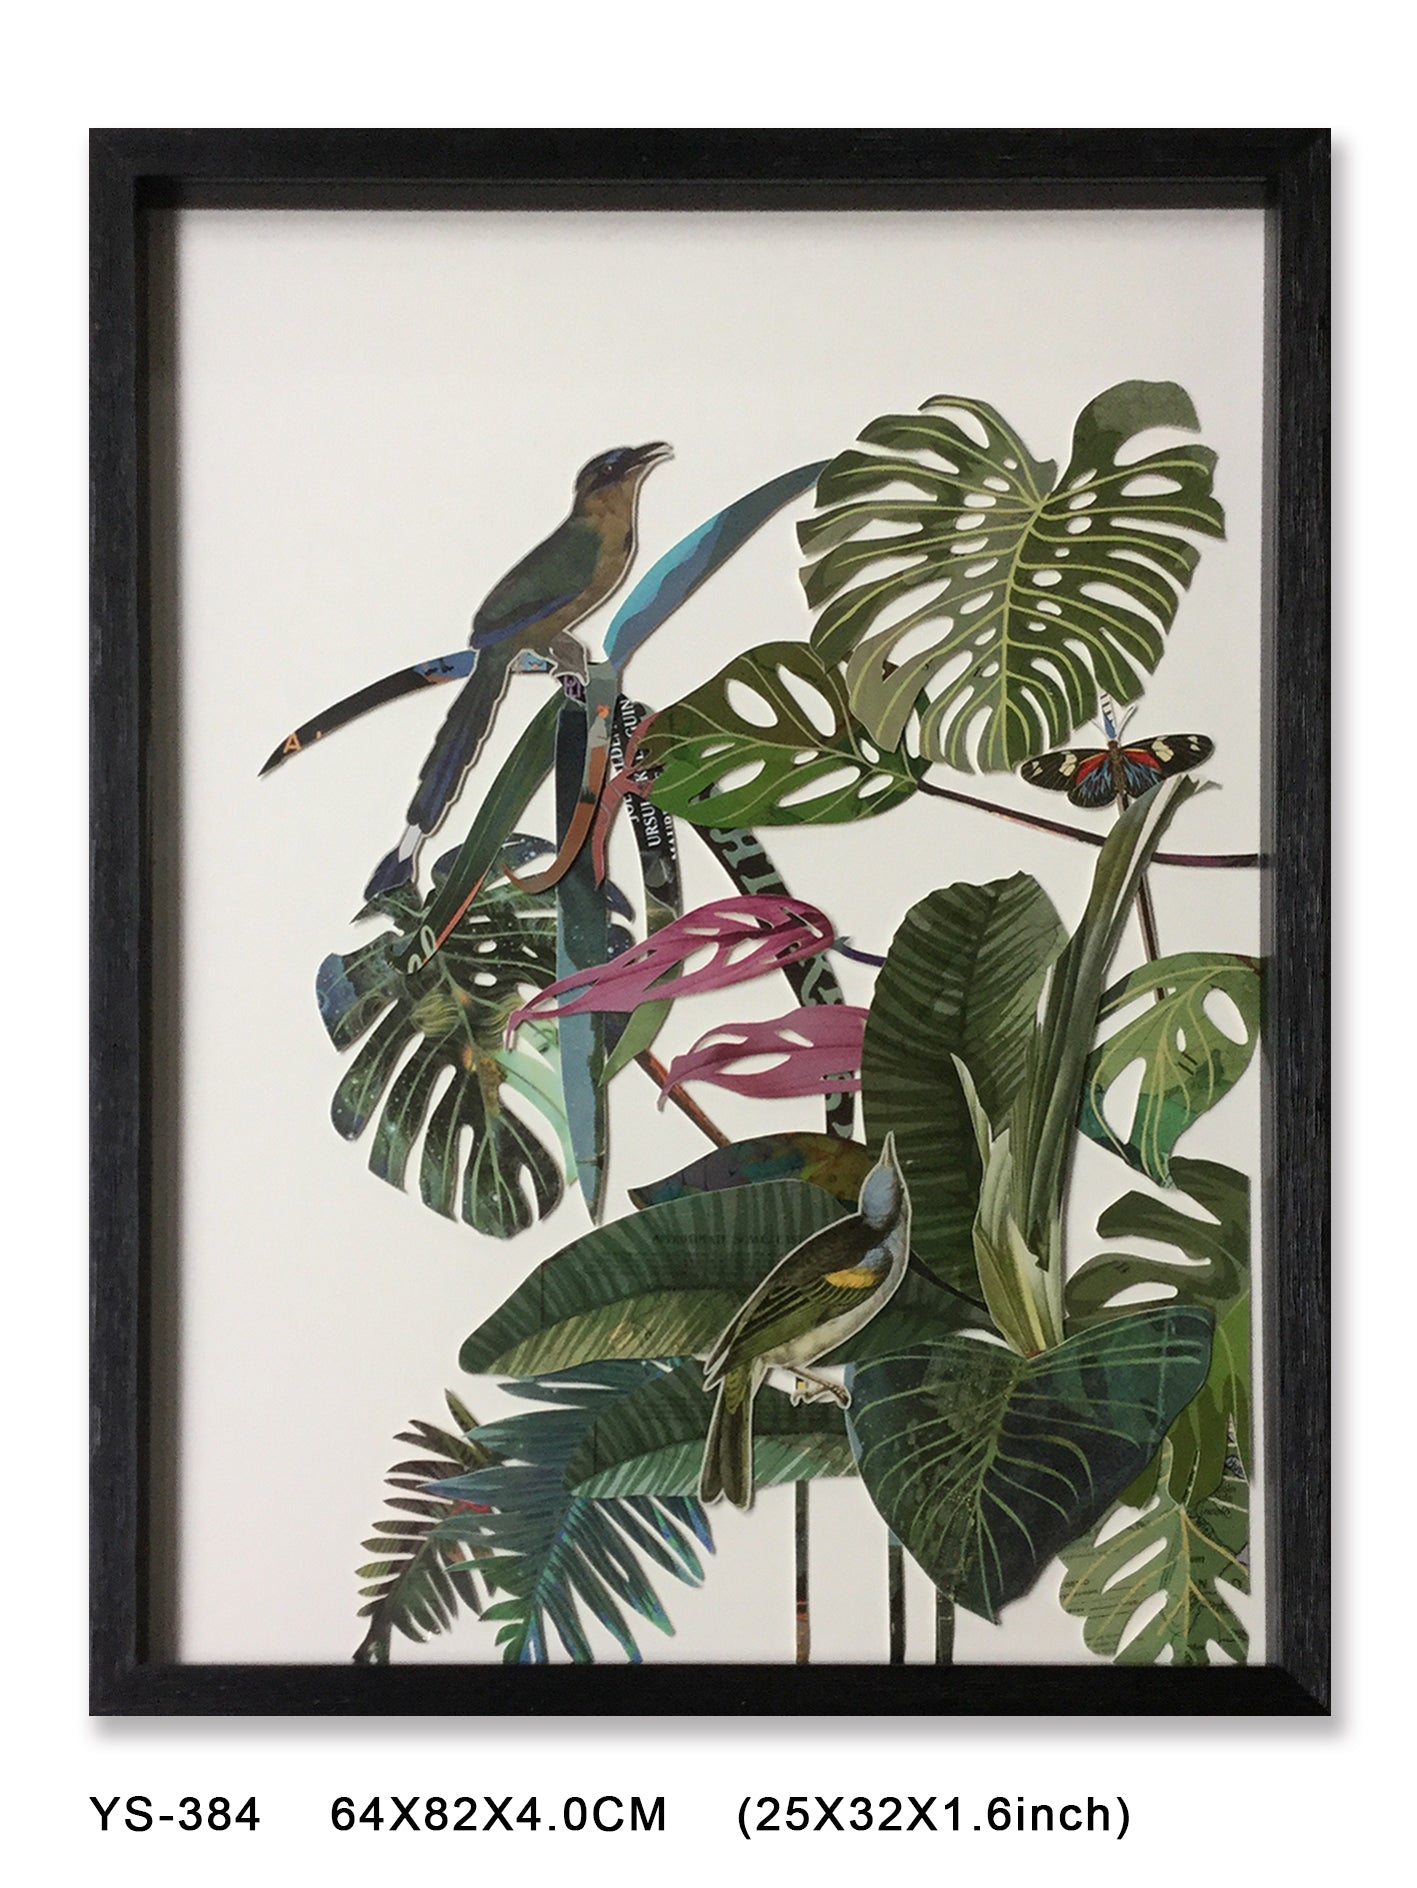 Birds and fauna wall collage art